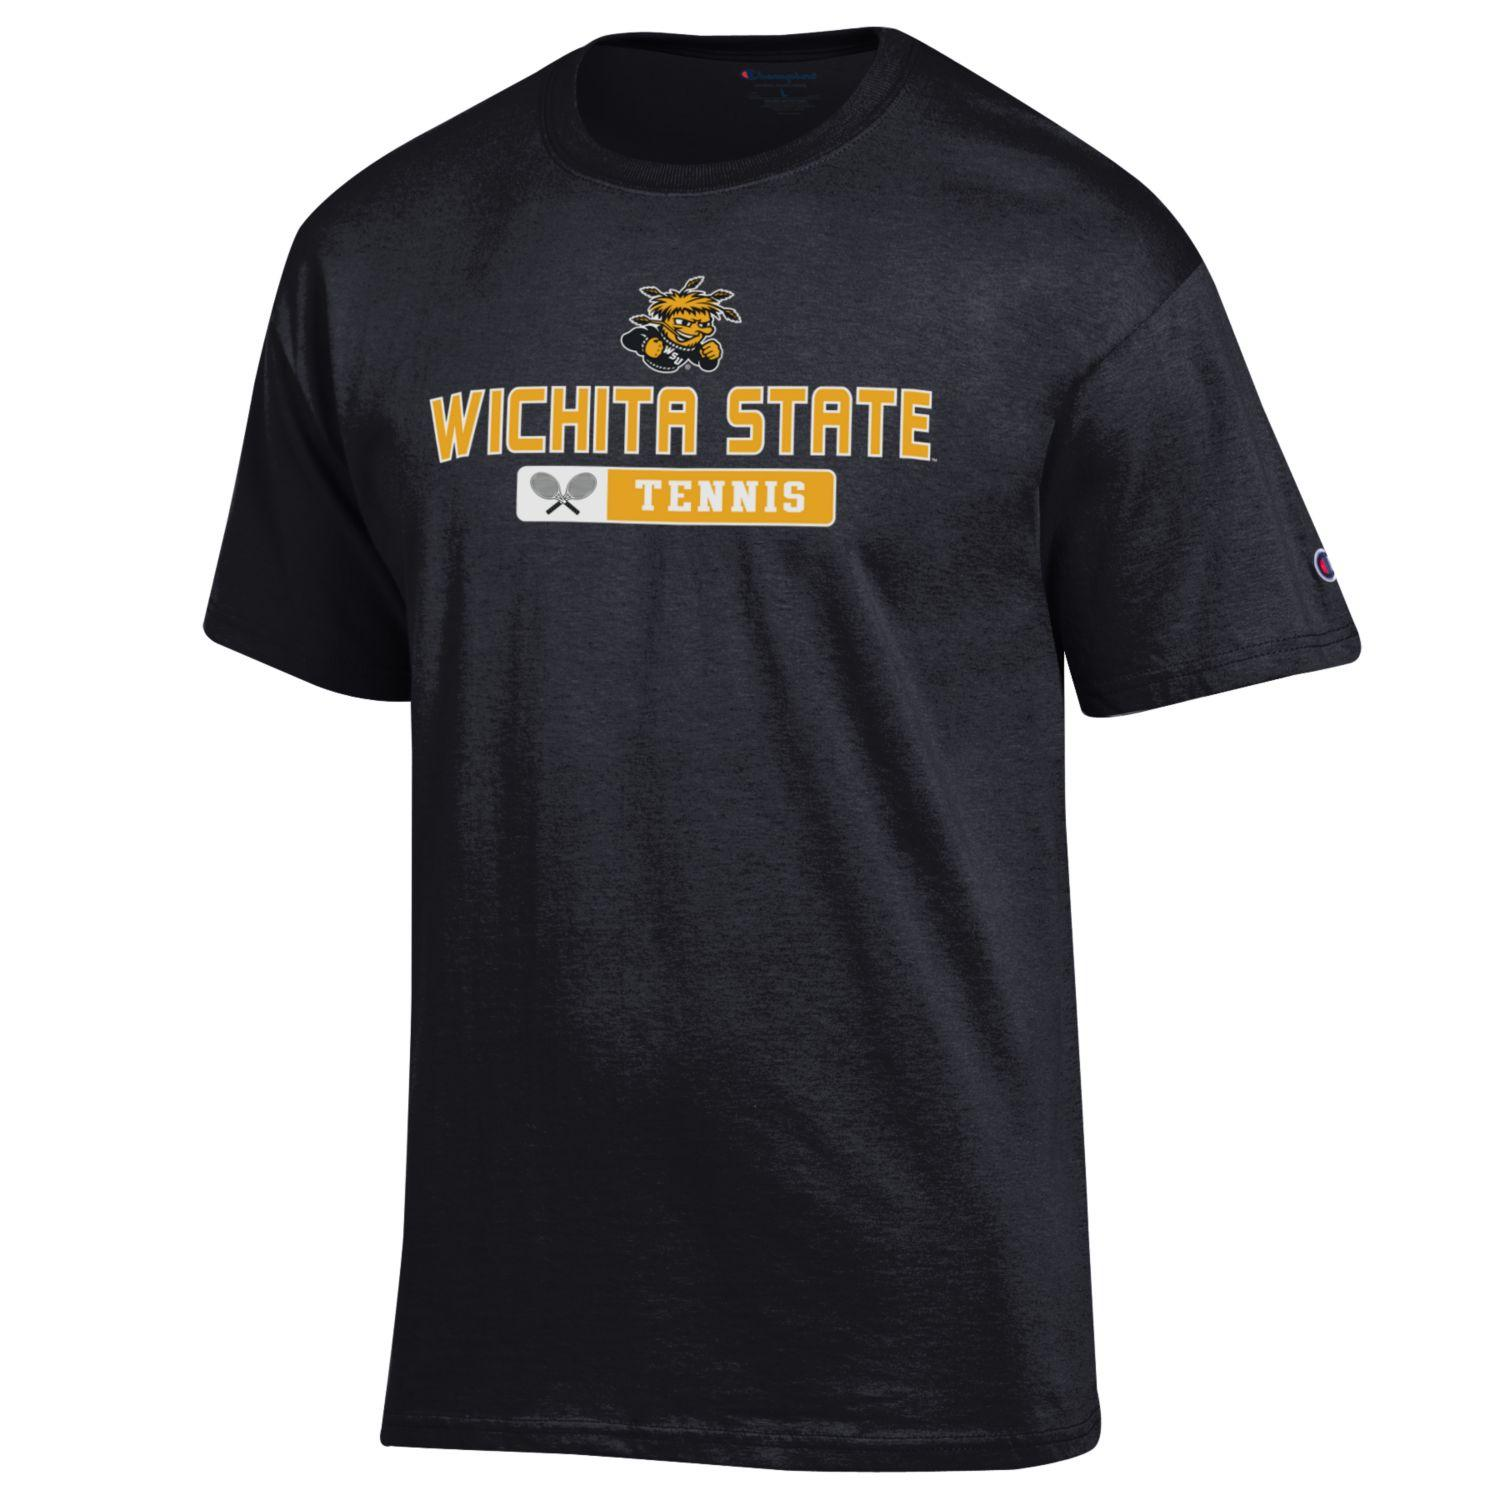 Image For Tee- Wichita State Tennis